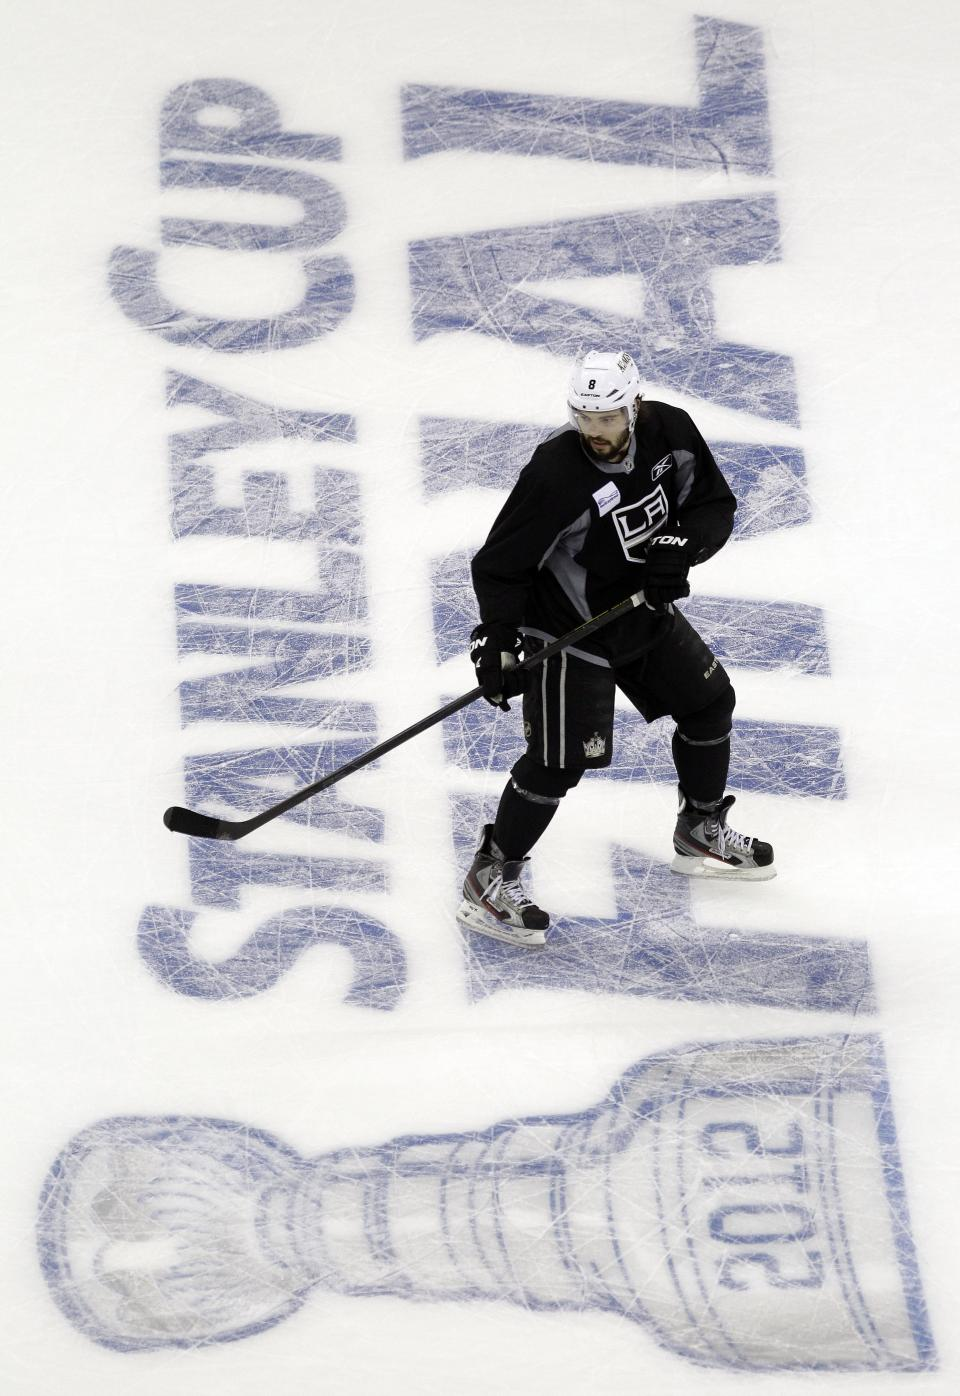 Los Angeles Kings' Drew Doughty skates during practice in preparation for Wednesday's Game 1 of the NHL hockey Stanley Cup Final series against the New Jersey Devils, Tuesday, May 29, 2012, in Newark, N.J. (AP Photo/Julio Cortez)